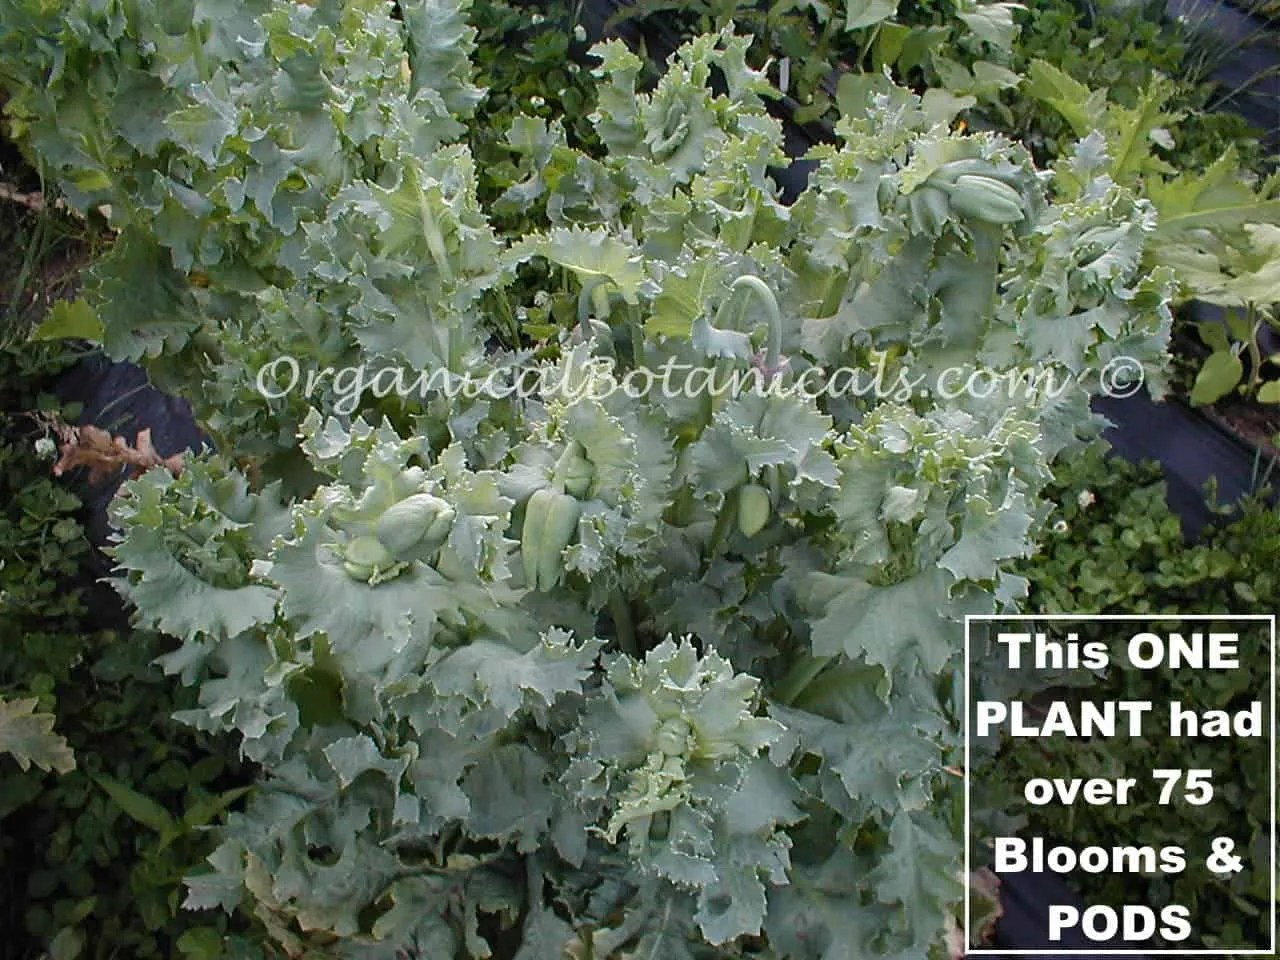 Over 75 PODS ONE Hungarian Blue Poppy Plant